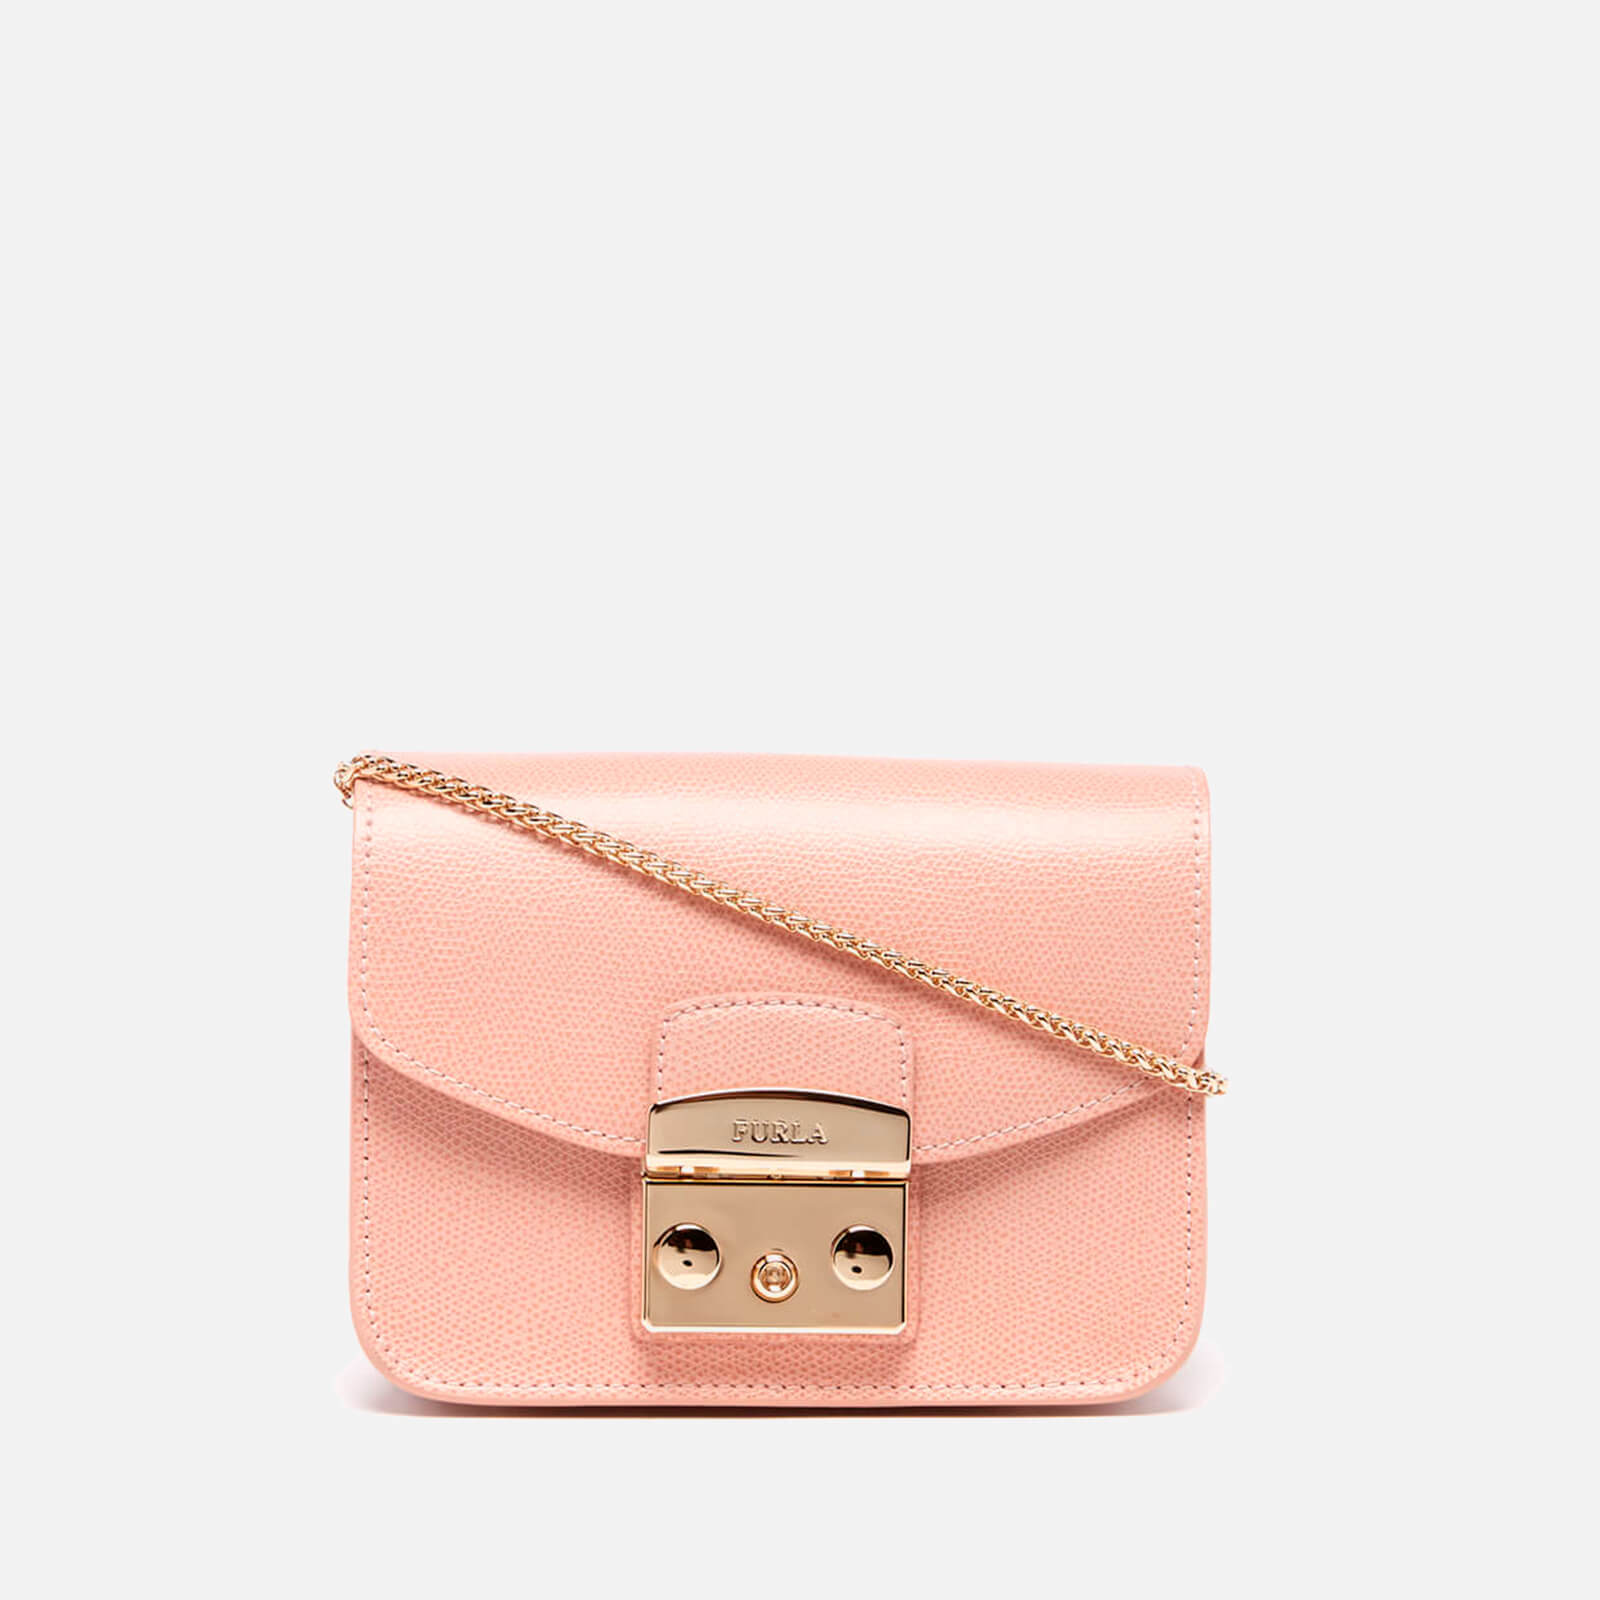 Furla Women's Metropolis Mini Cross Body Bag - Pink